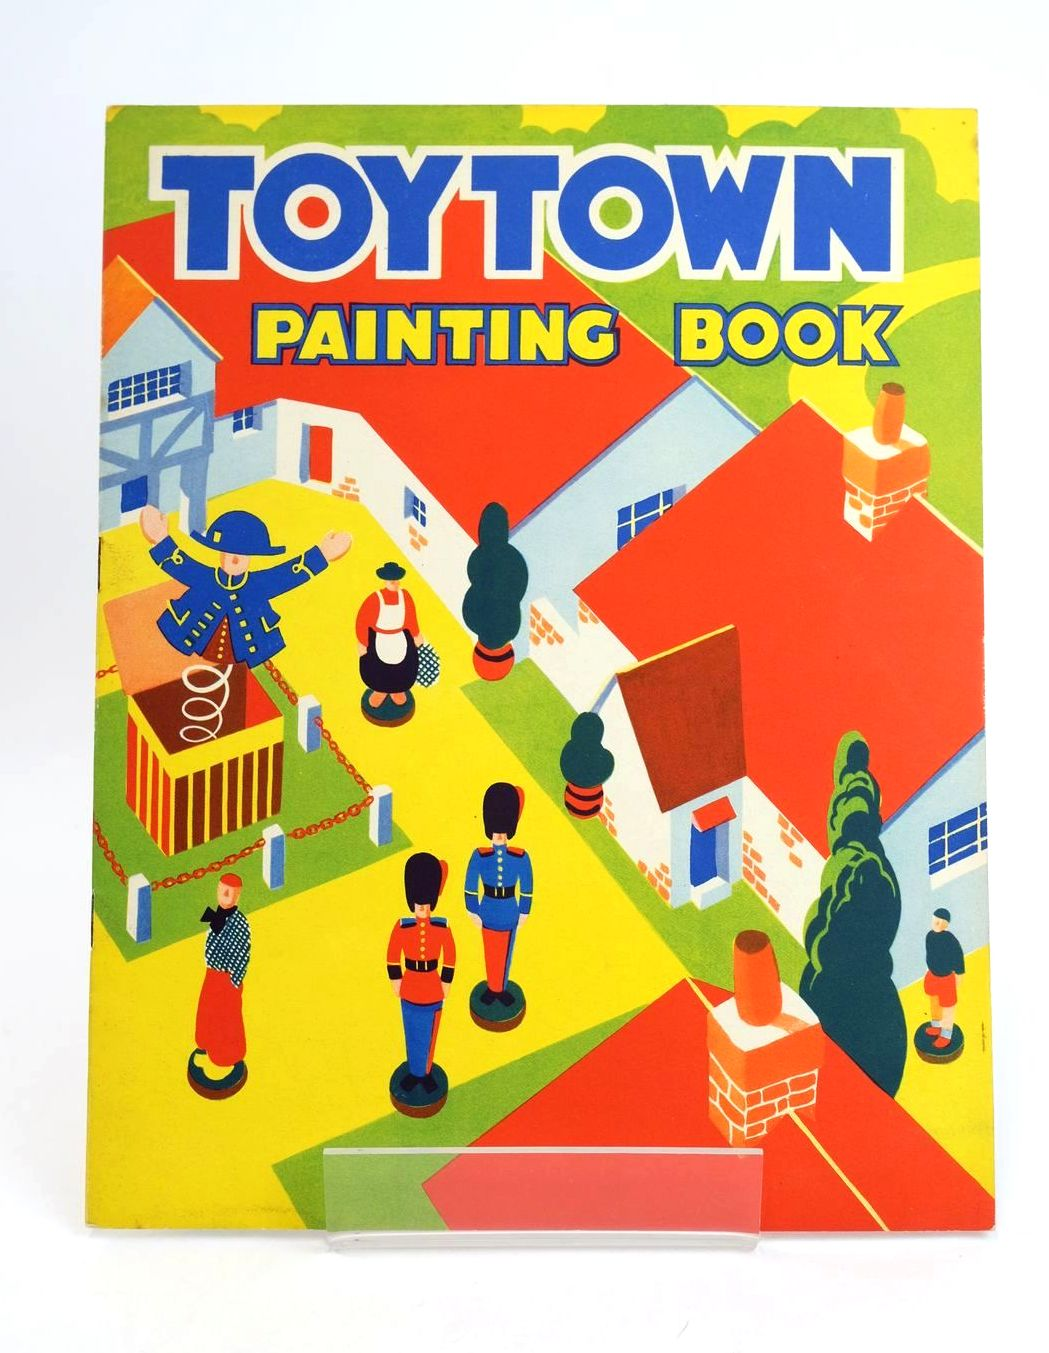 Photo of TOYTOWN PAINTING BOOK published by P.M. (Productions) Ltd. (STOCK CODE: 1318570)  for sale by Stella & Rose's Books